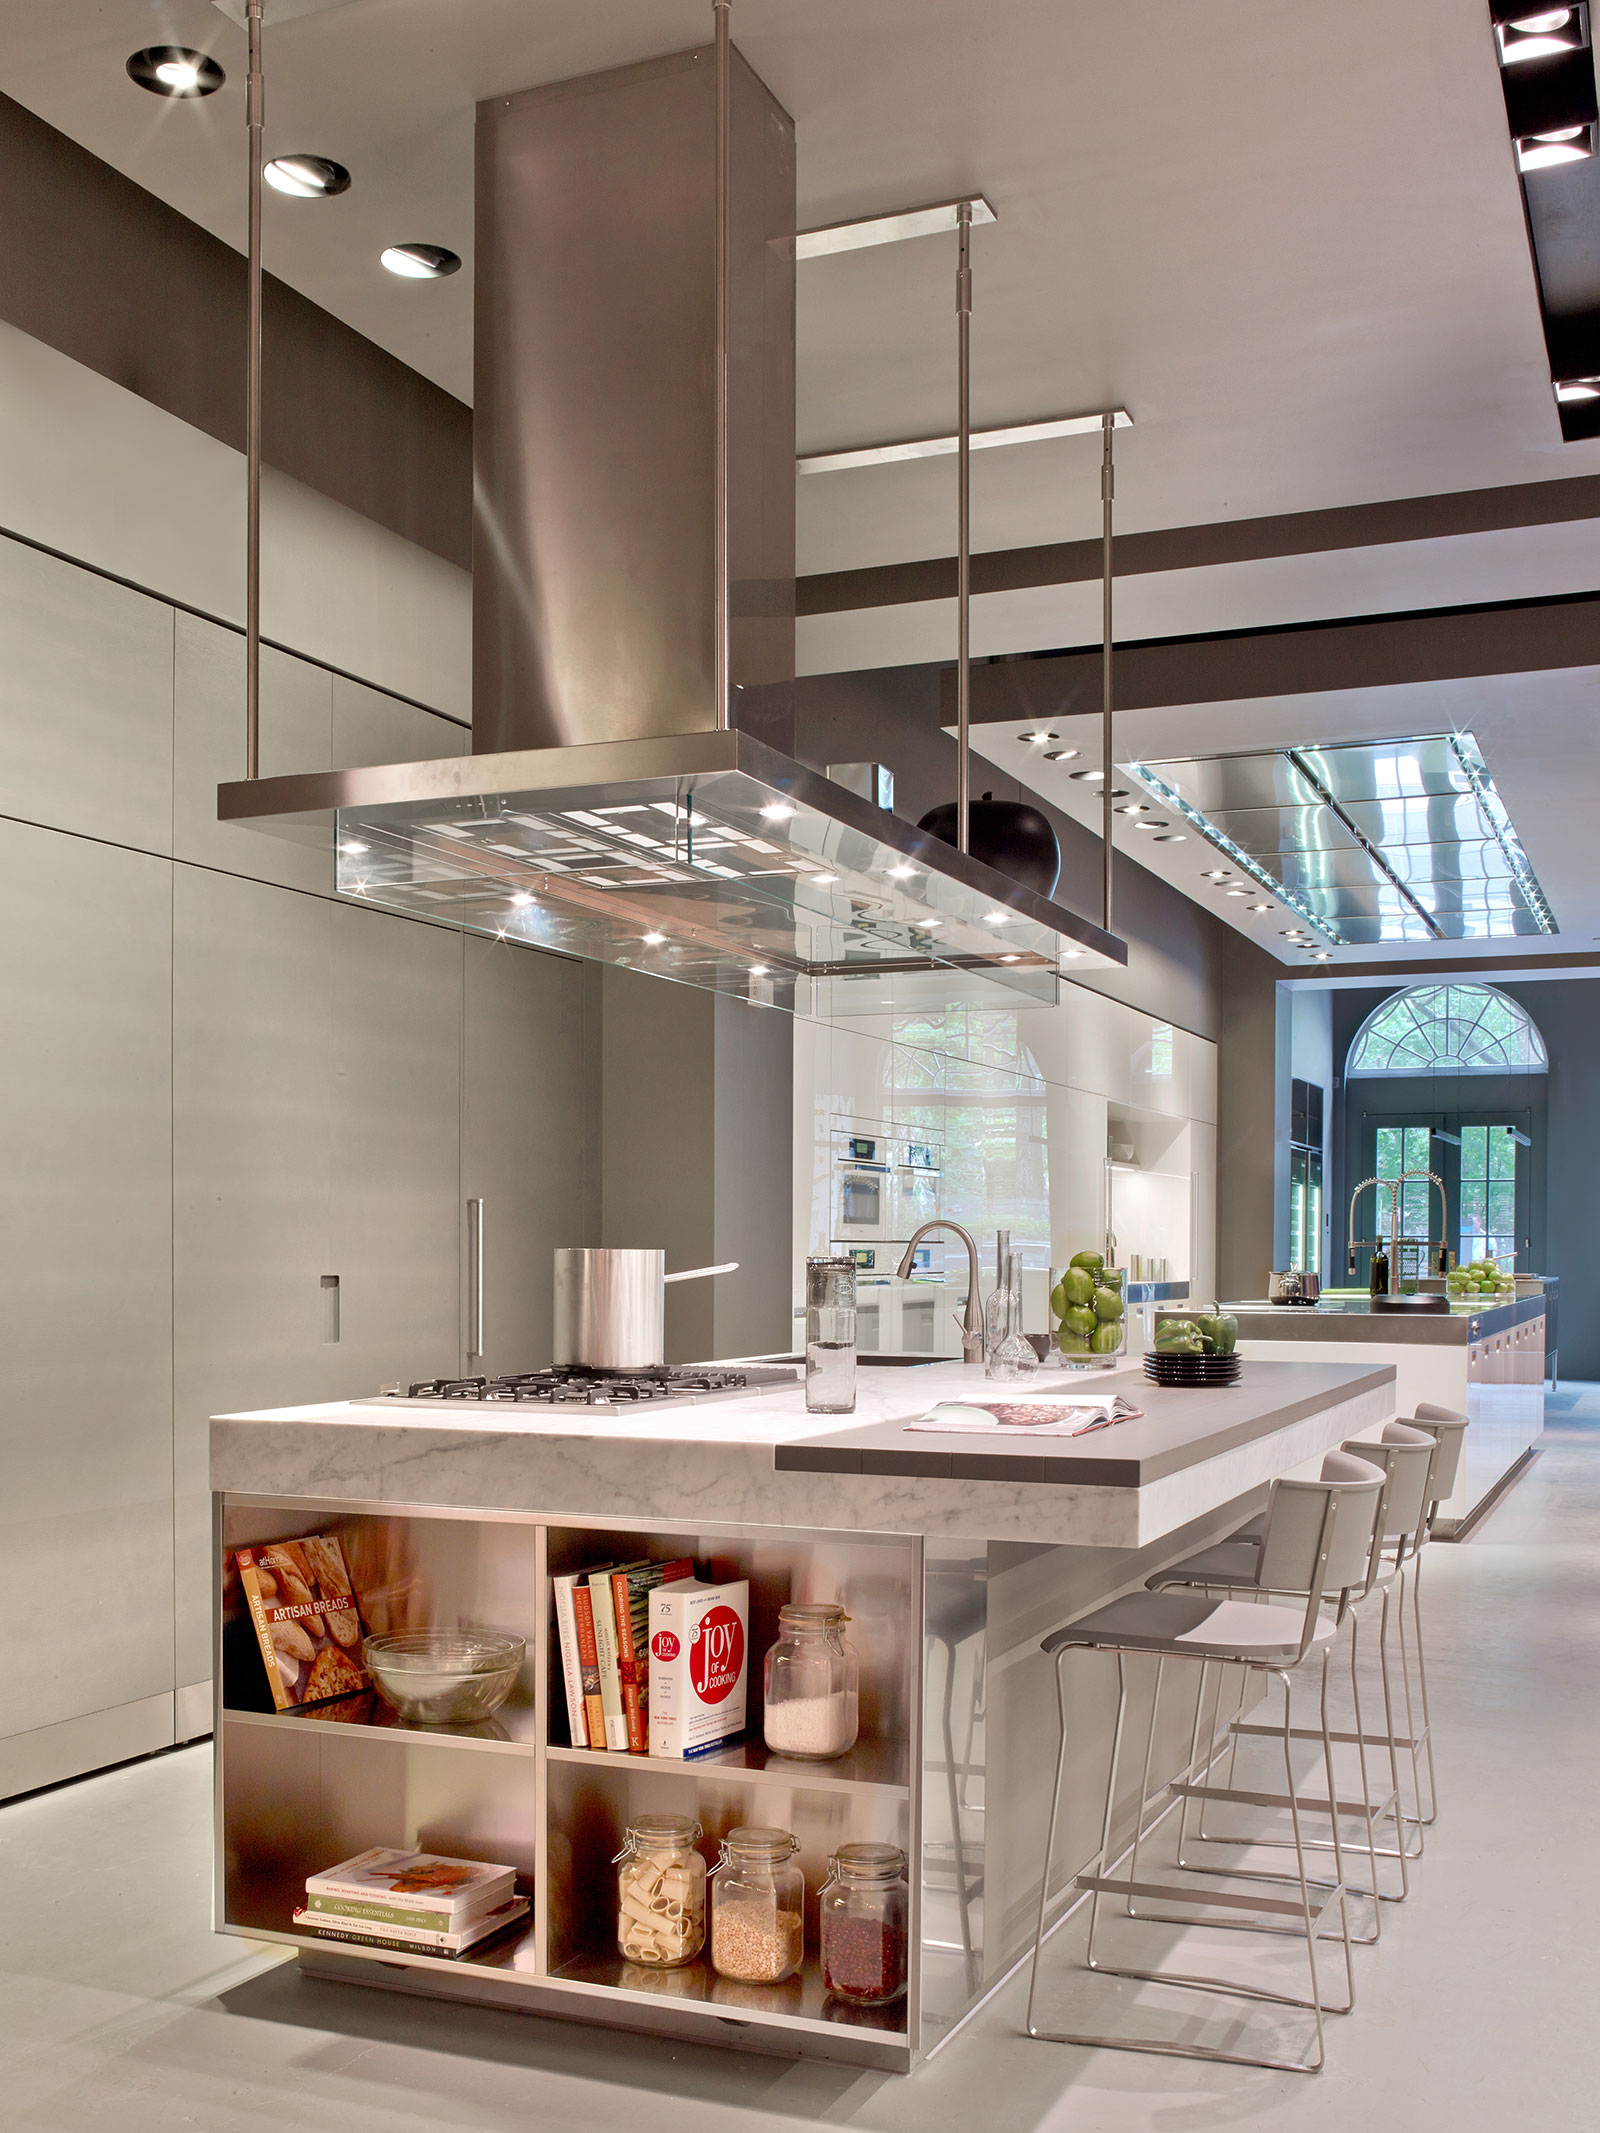 Arclinea-NYC-42-2.jpg